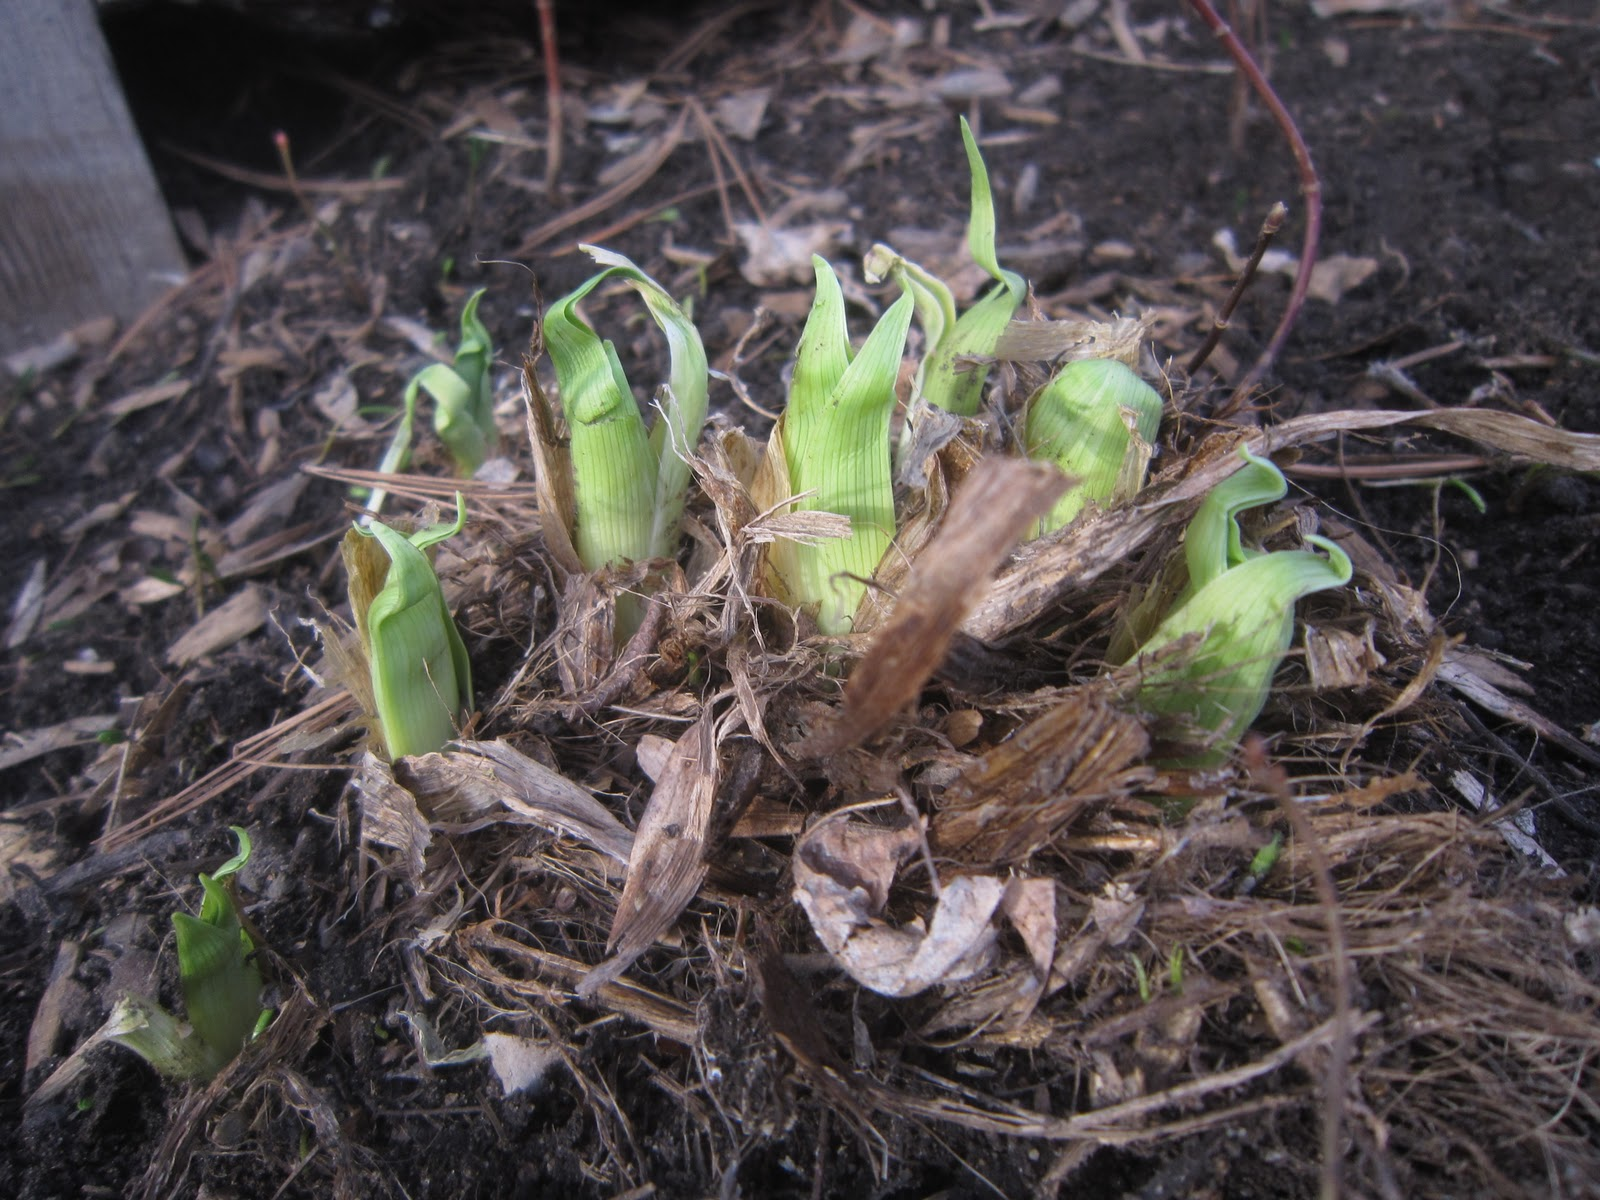 Chuck does art identifying bulbs growing in early spring by shoots day lily shoots will have multiple triangular leaves coming off of a central point but unlike irises they are wrapped around each other instead of side by izmirmasajfo